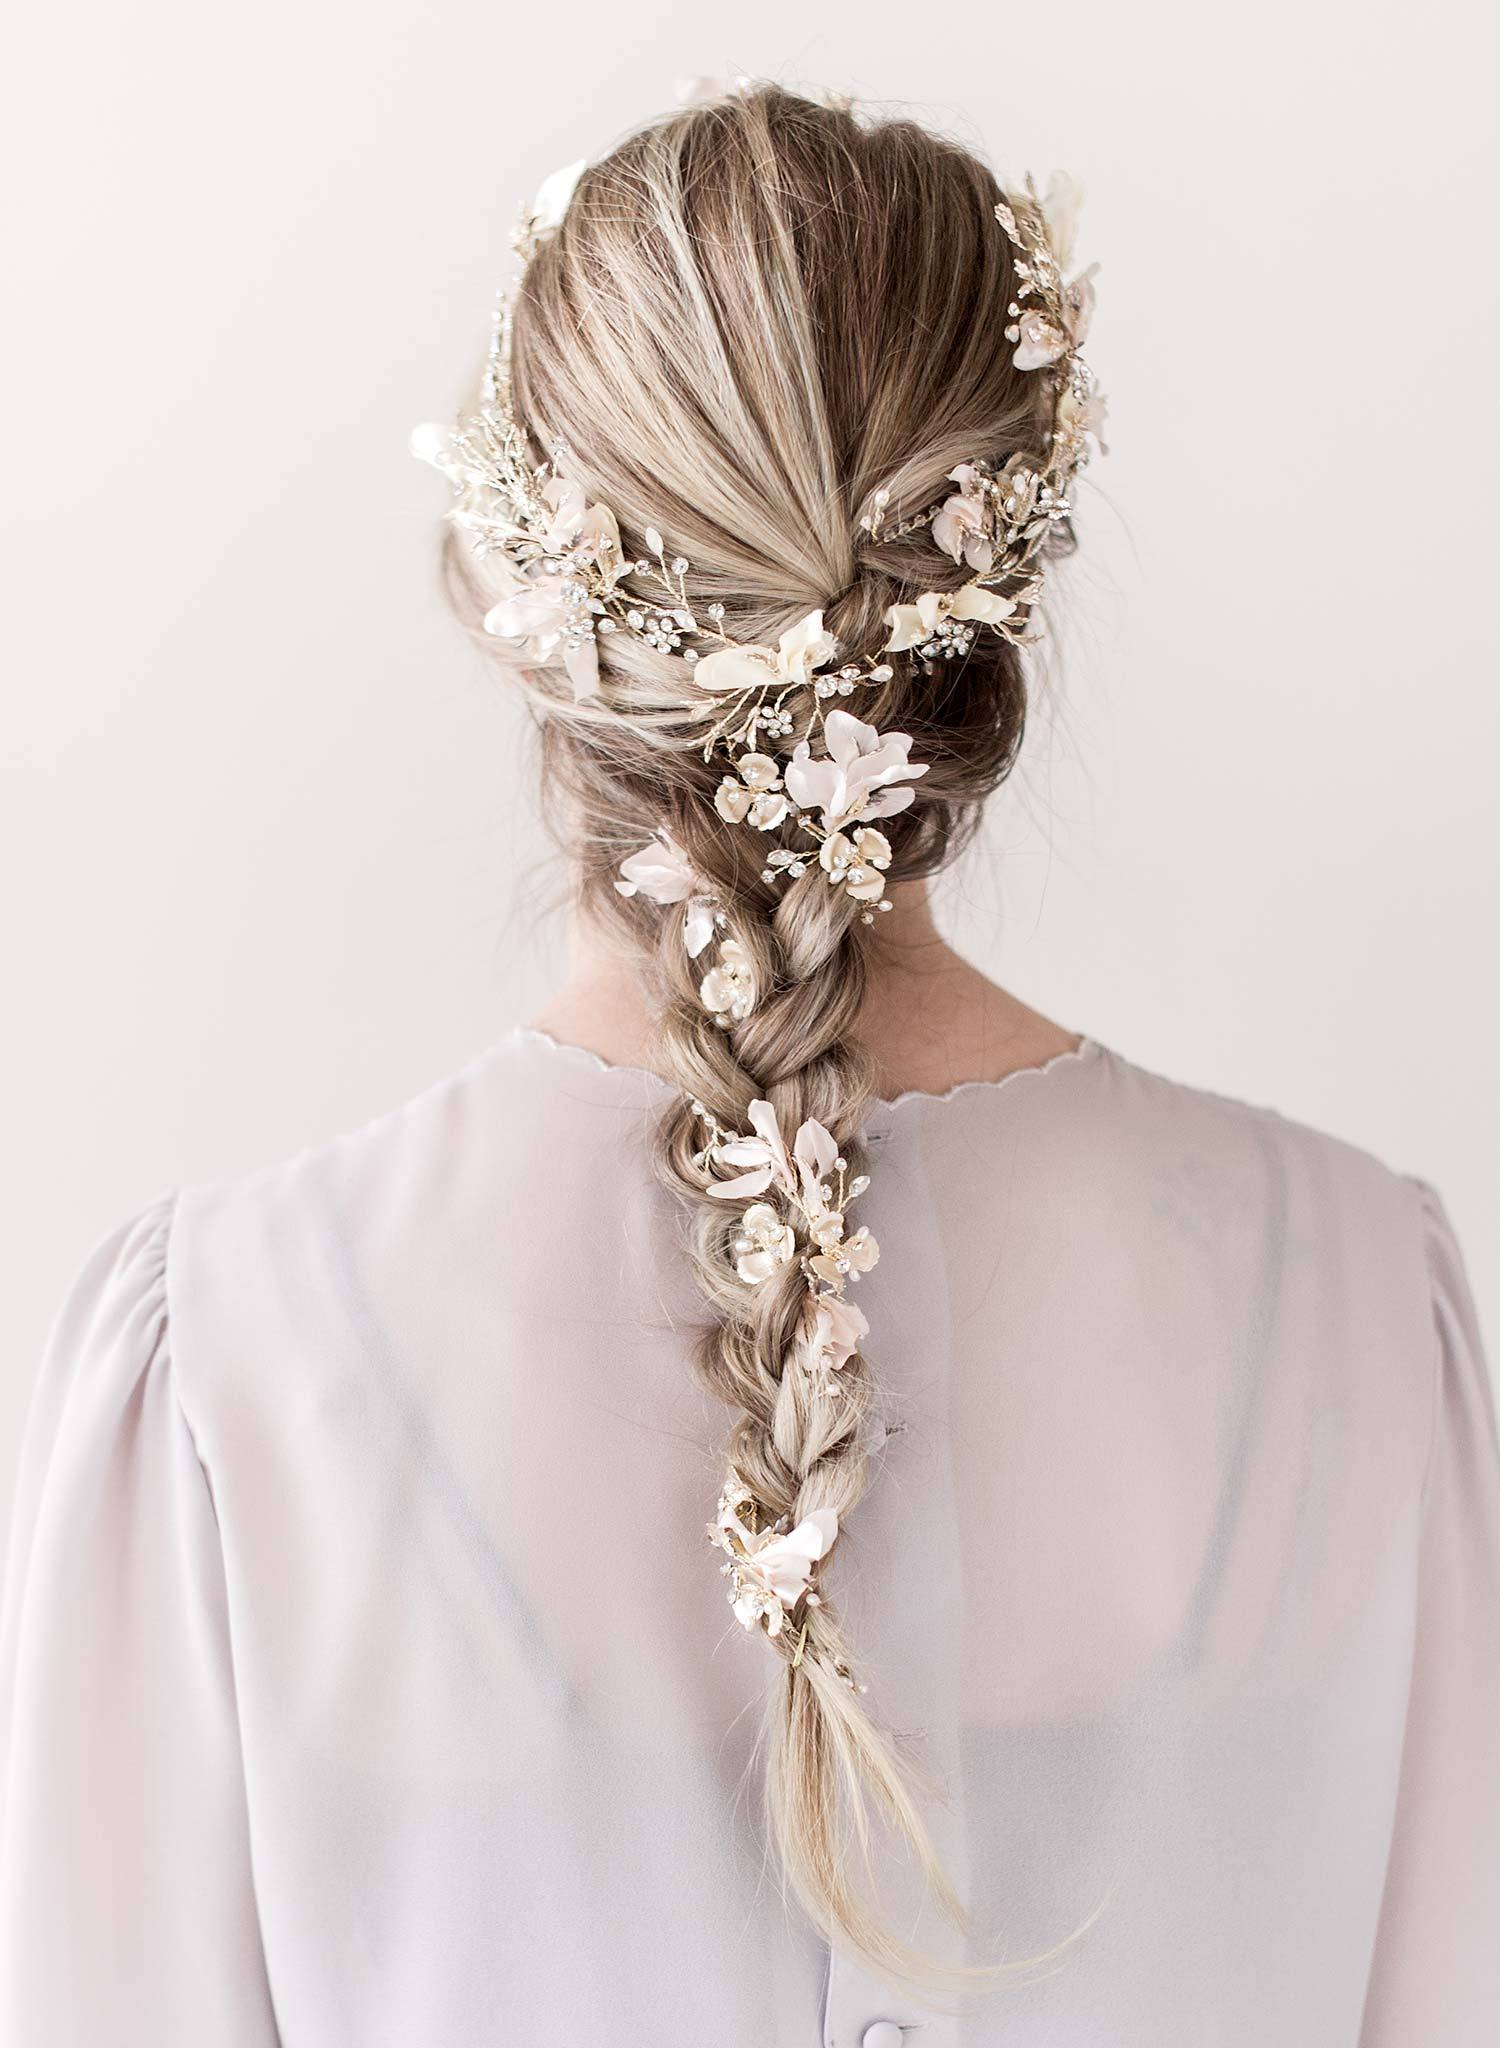 Hair vine accessory by Twigs and Honey